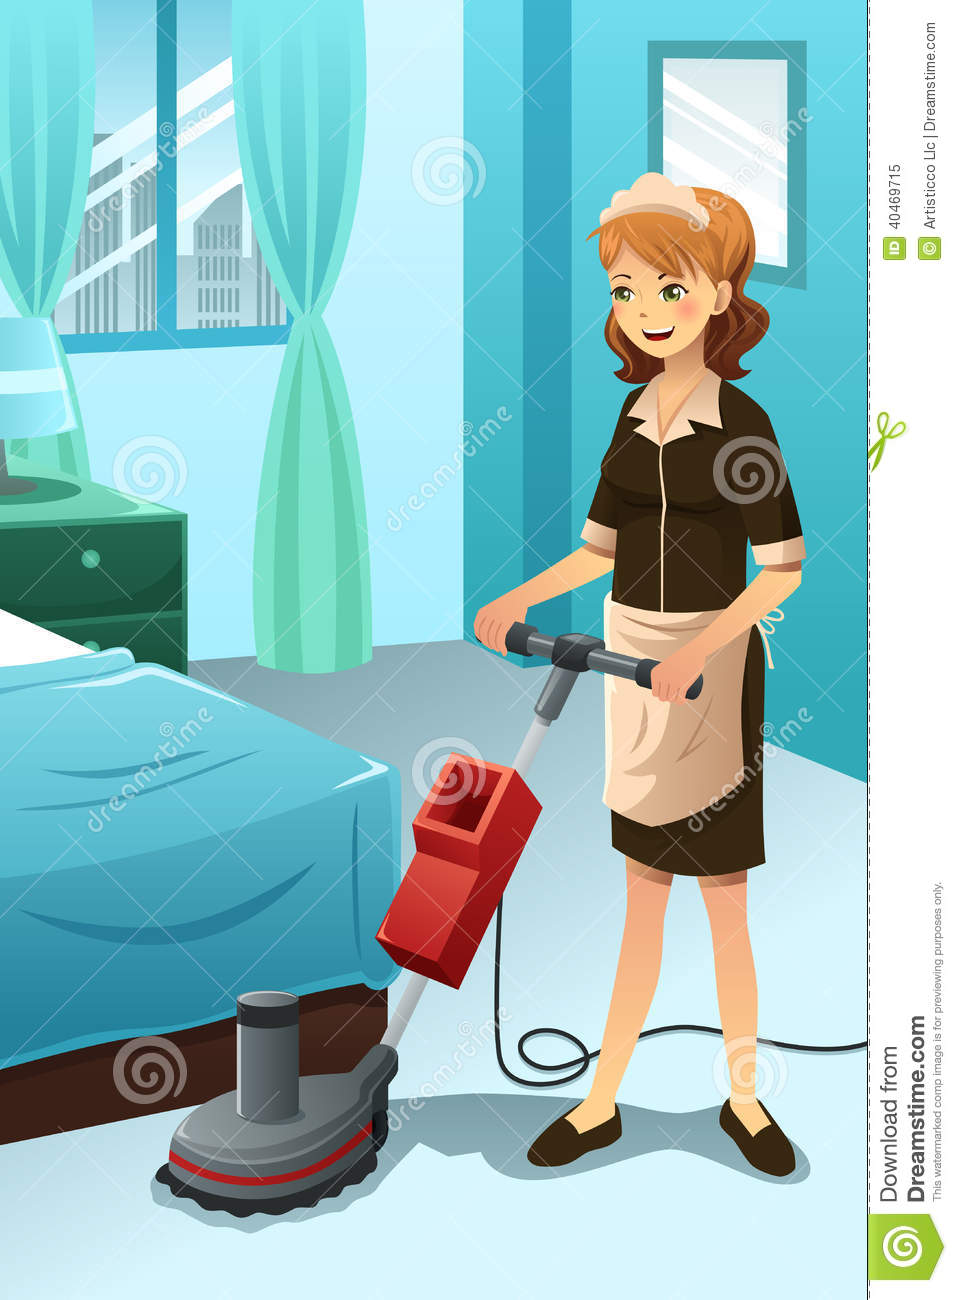 Room Clip Art: Hotel Janitor Cleaning The Hotel Room Stock Vector